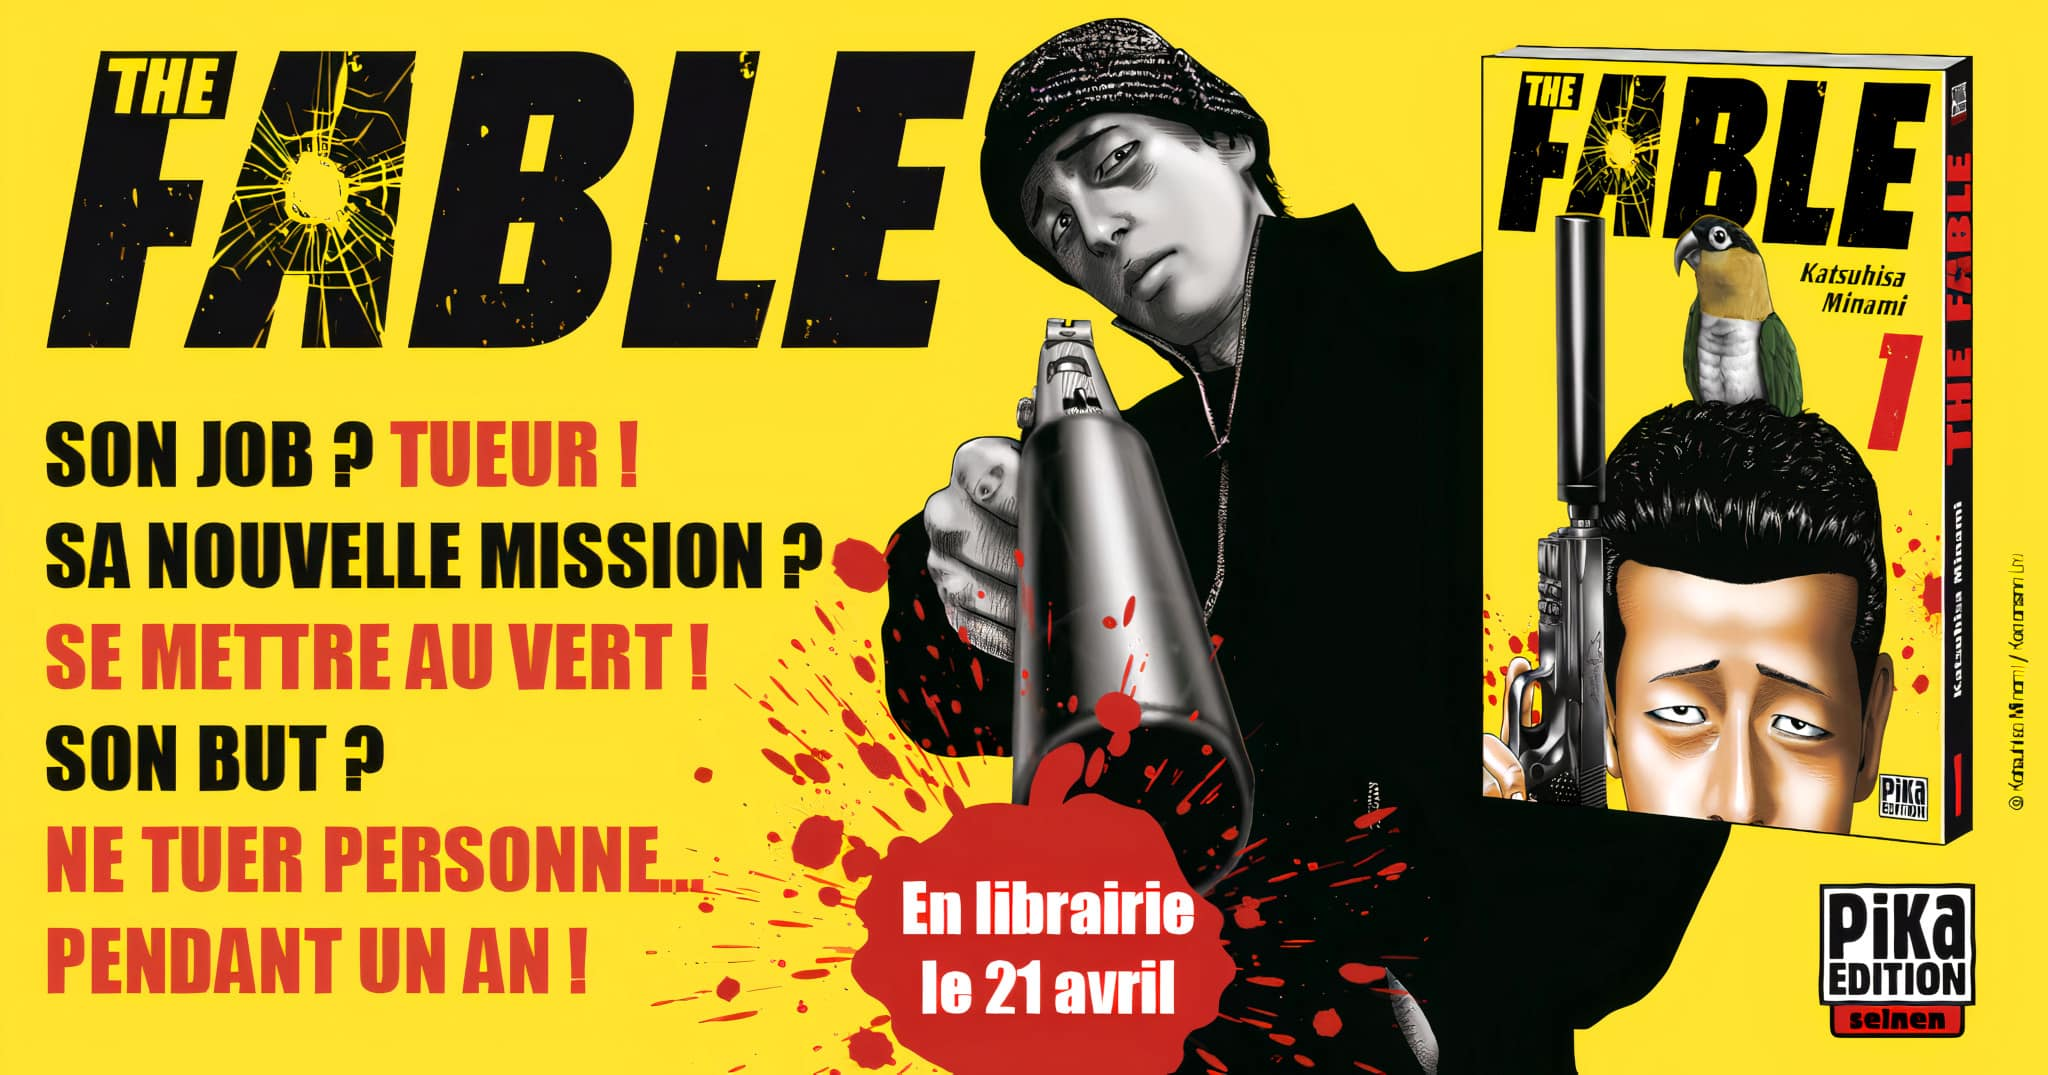 Annonce du manga The Fable en France aux éditions Pika